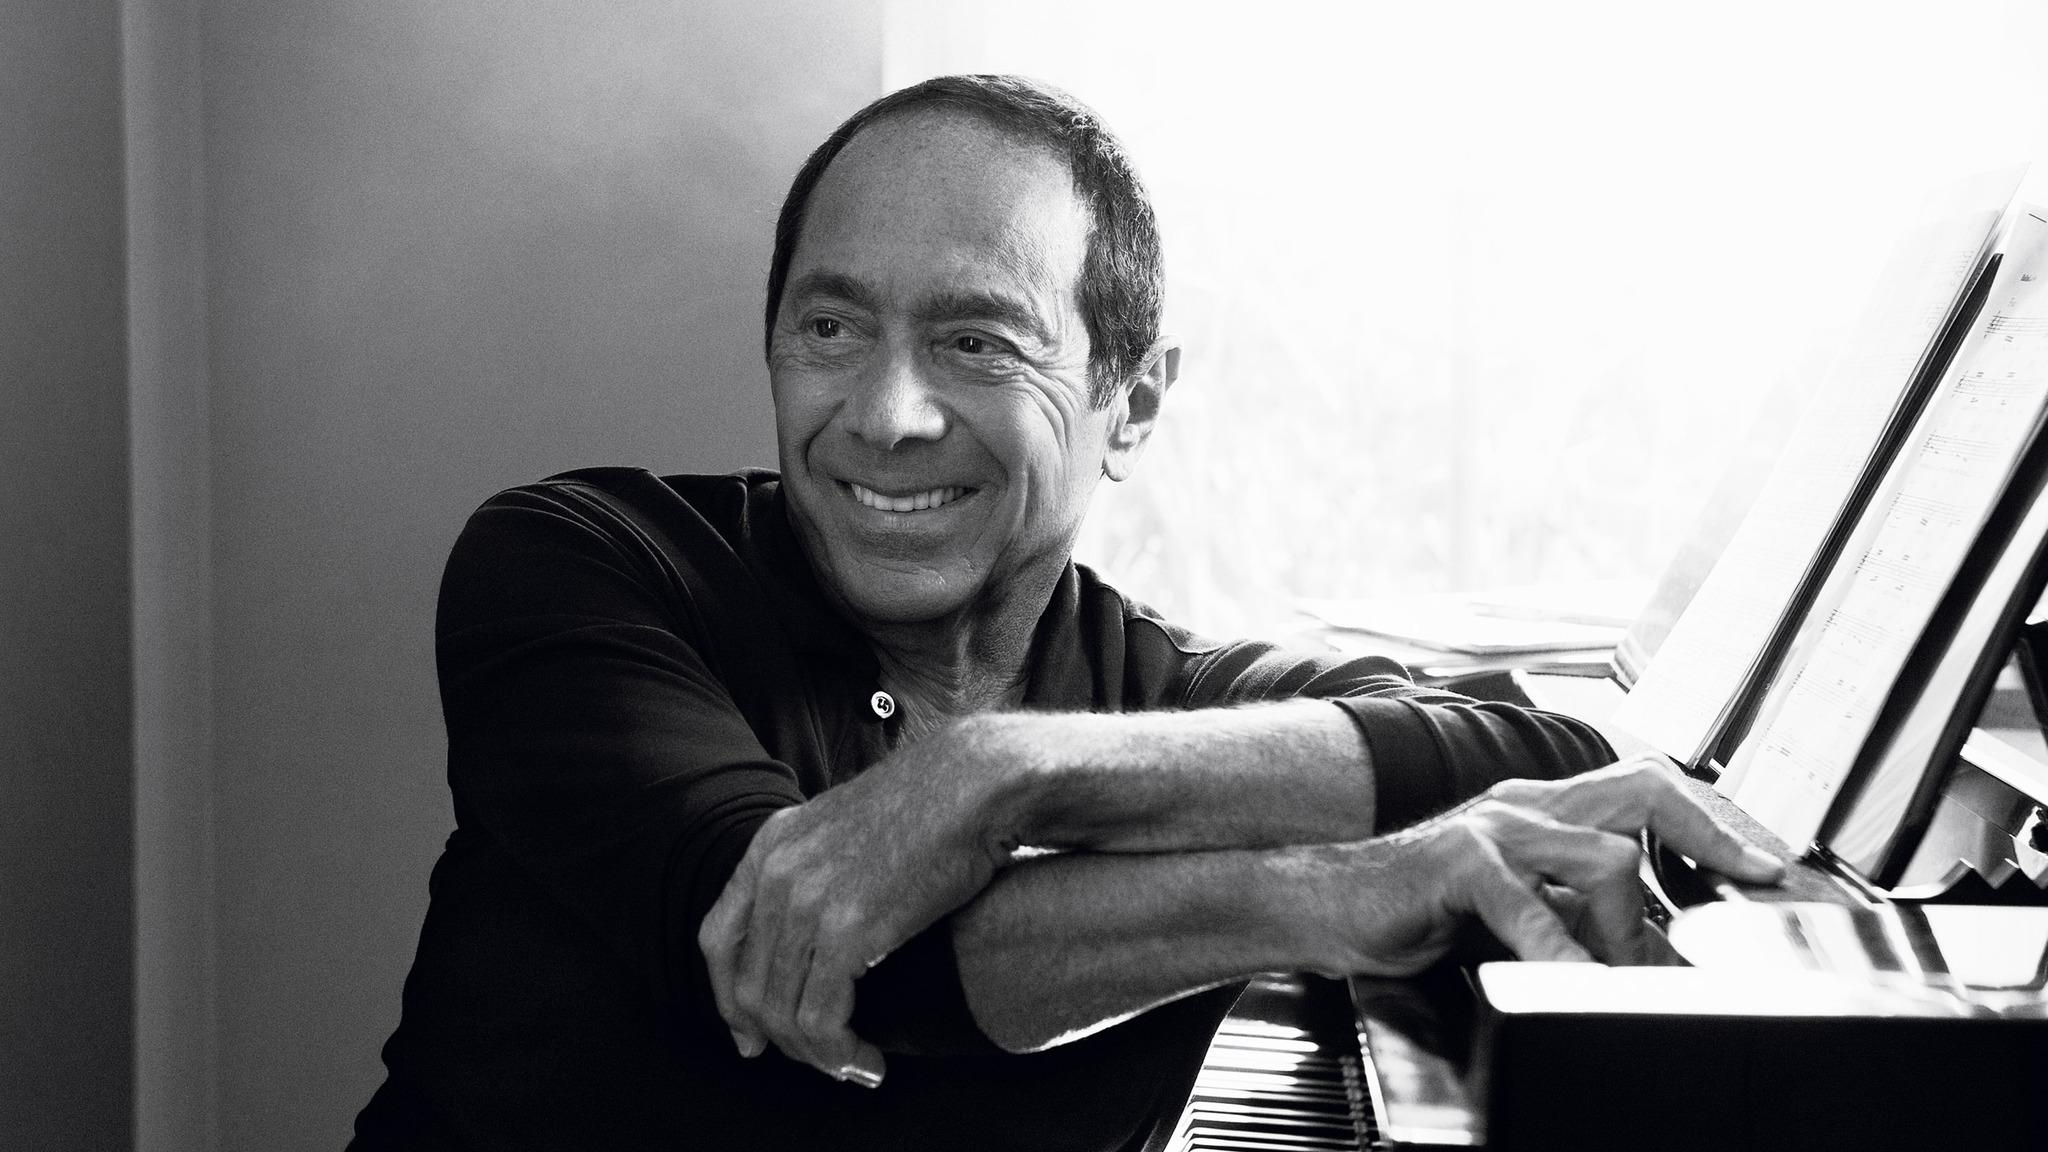 Paul Anka at Palomar Starlight Theater